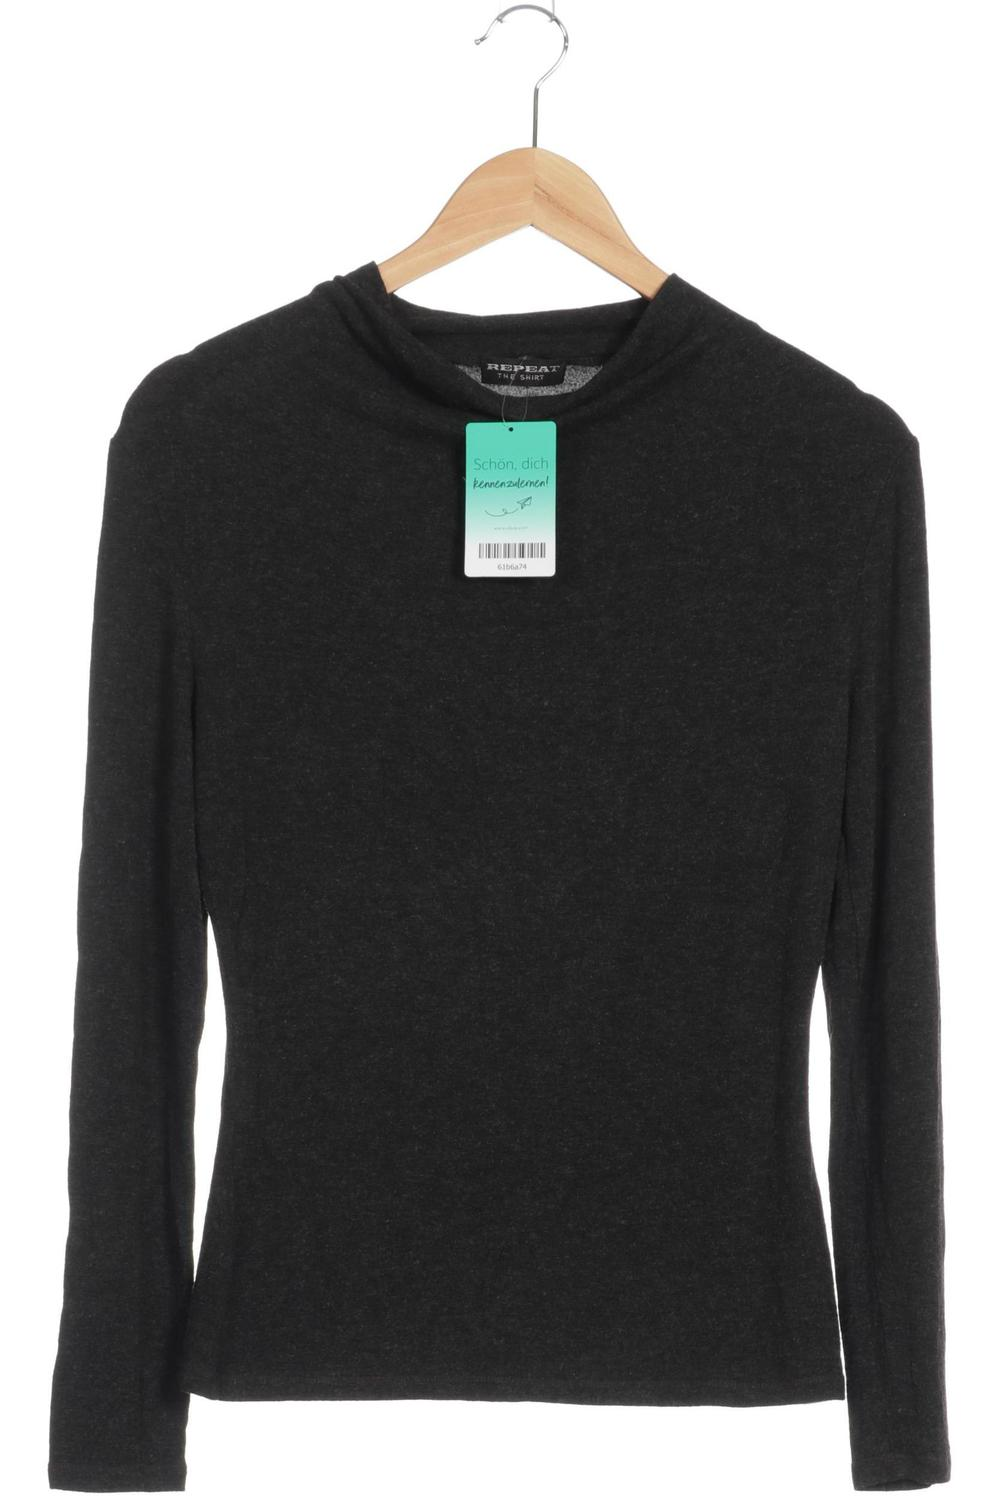 asos Damen Sweatshirt INT S Second Hand kaufen | ubup